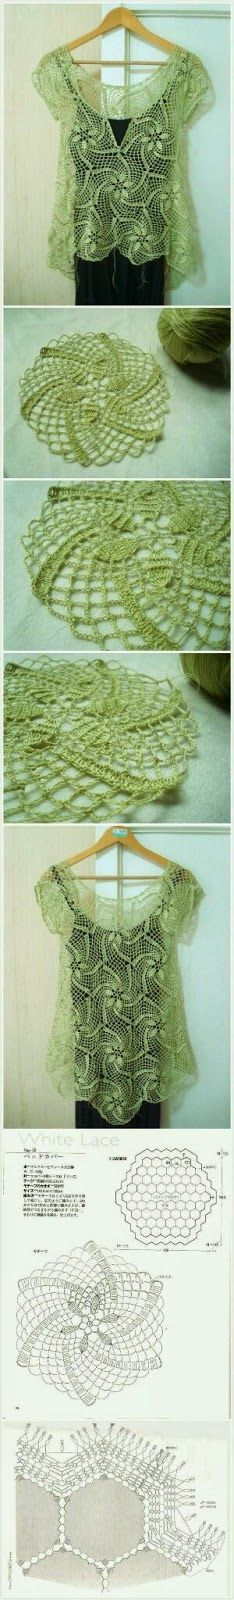 [] #<br/> # #Crochet #Tops,<br/> # #Saints,<br/> # #Cristina,<br/> # #Bolero,<br/> # #Dress,<br/> # #Crochet #Ideas,<br/> # #Blog,<br/> # #Crafts,<br/> # #Blusas #Tejidas<br/>